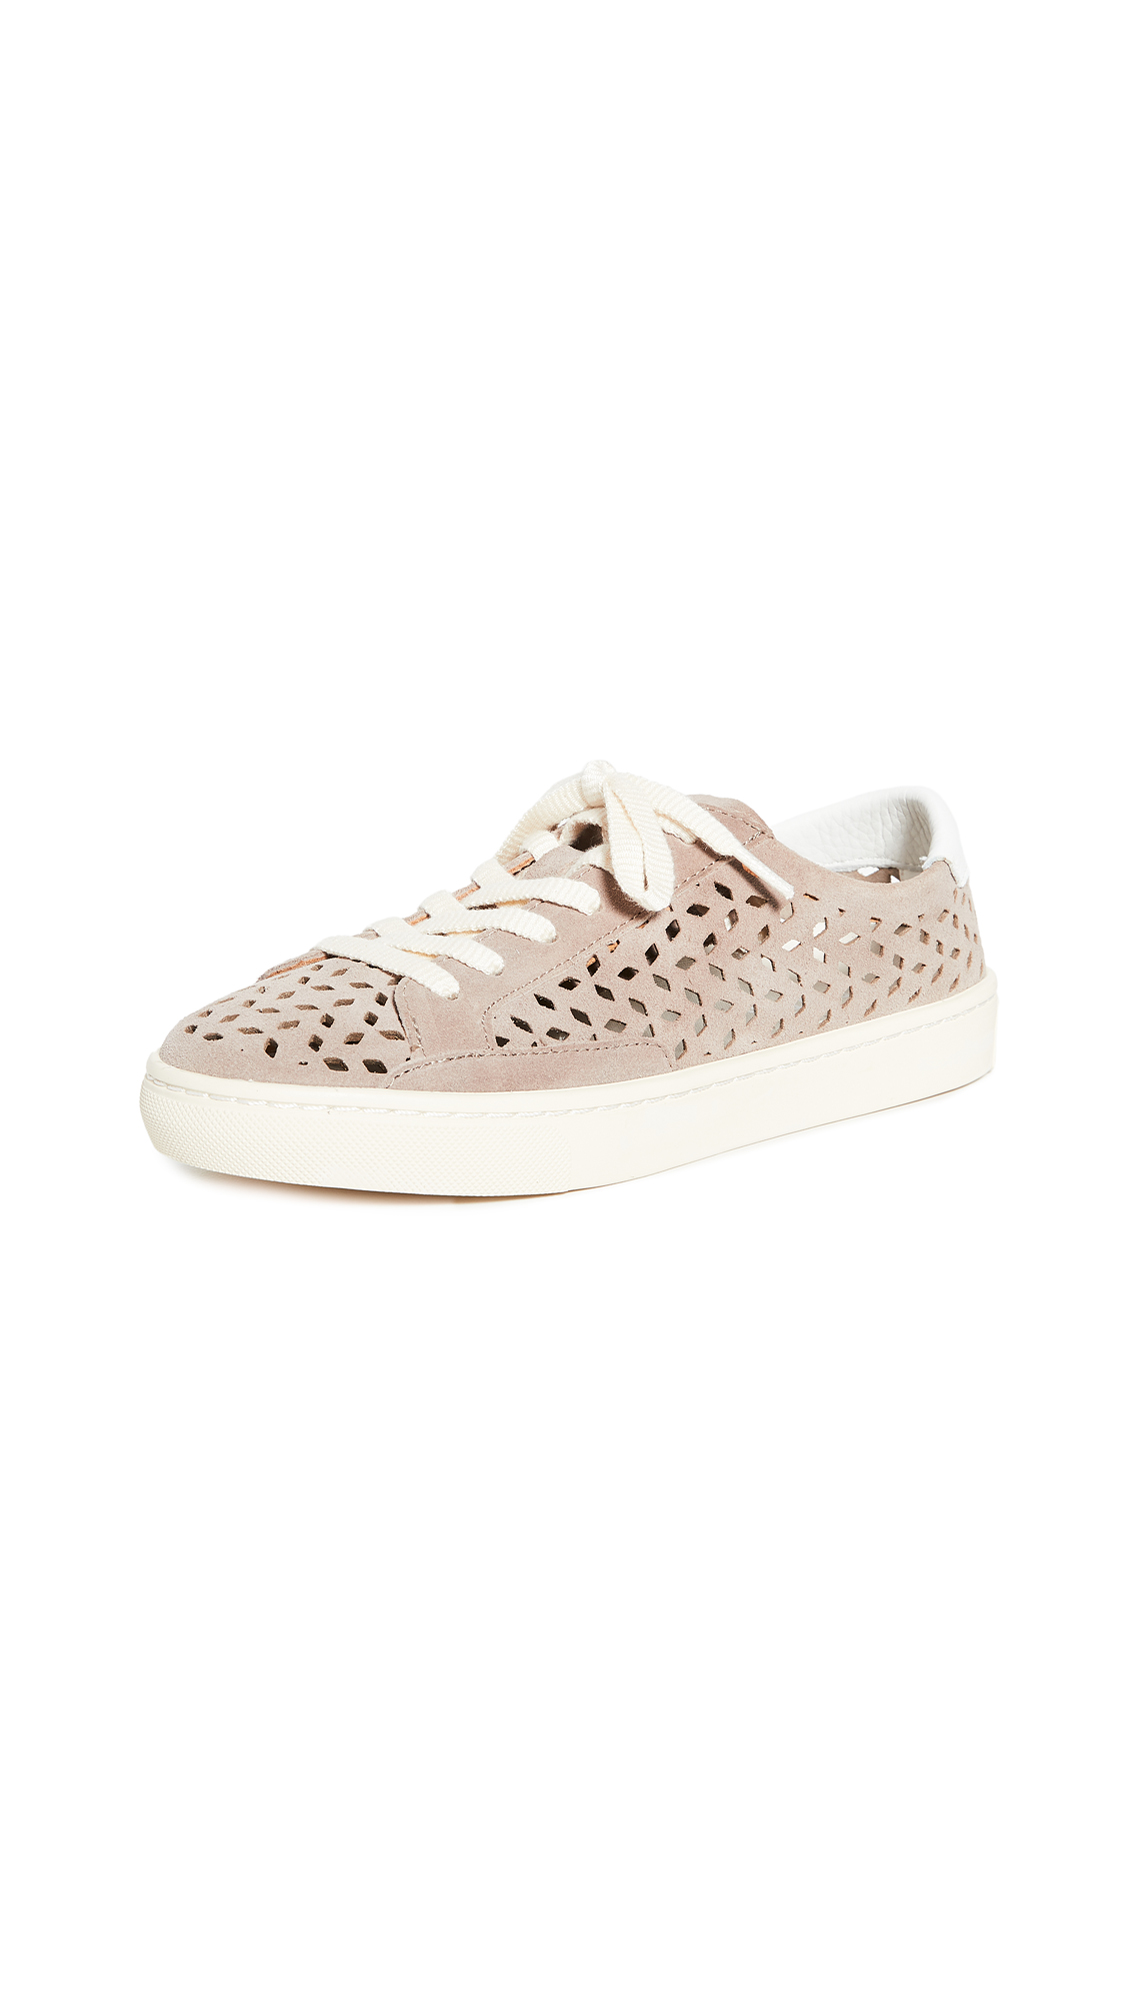 Soludos Ibiza Perforated Sneakers - 50% Off Sale